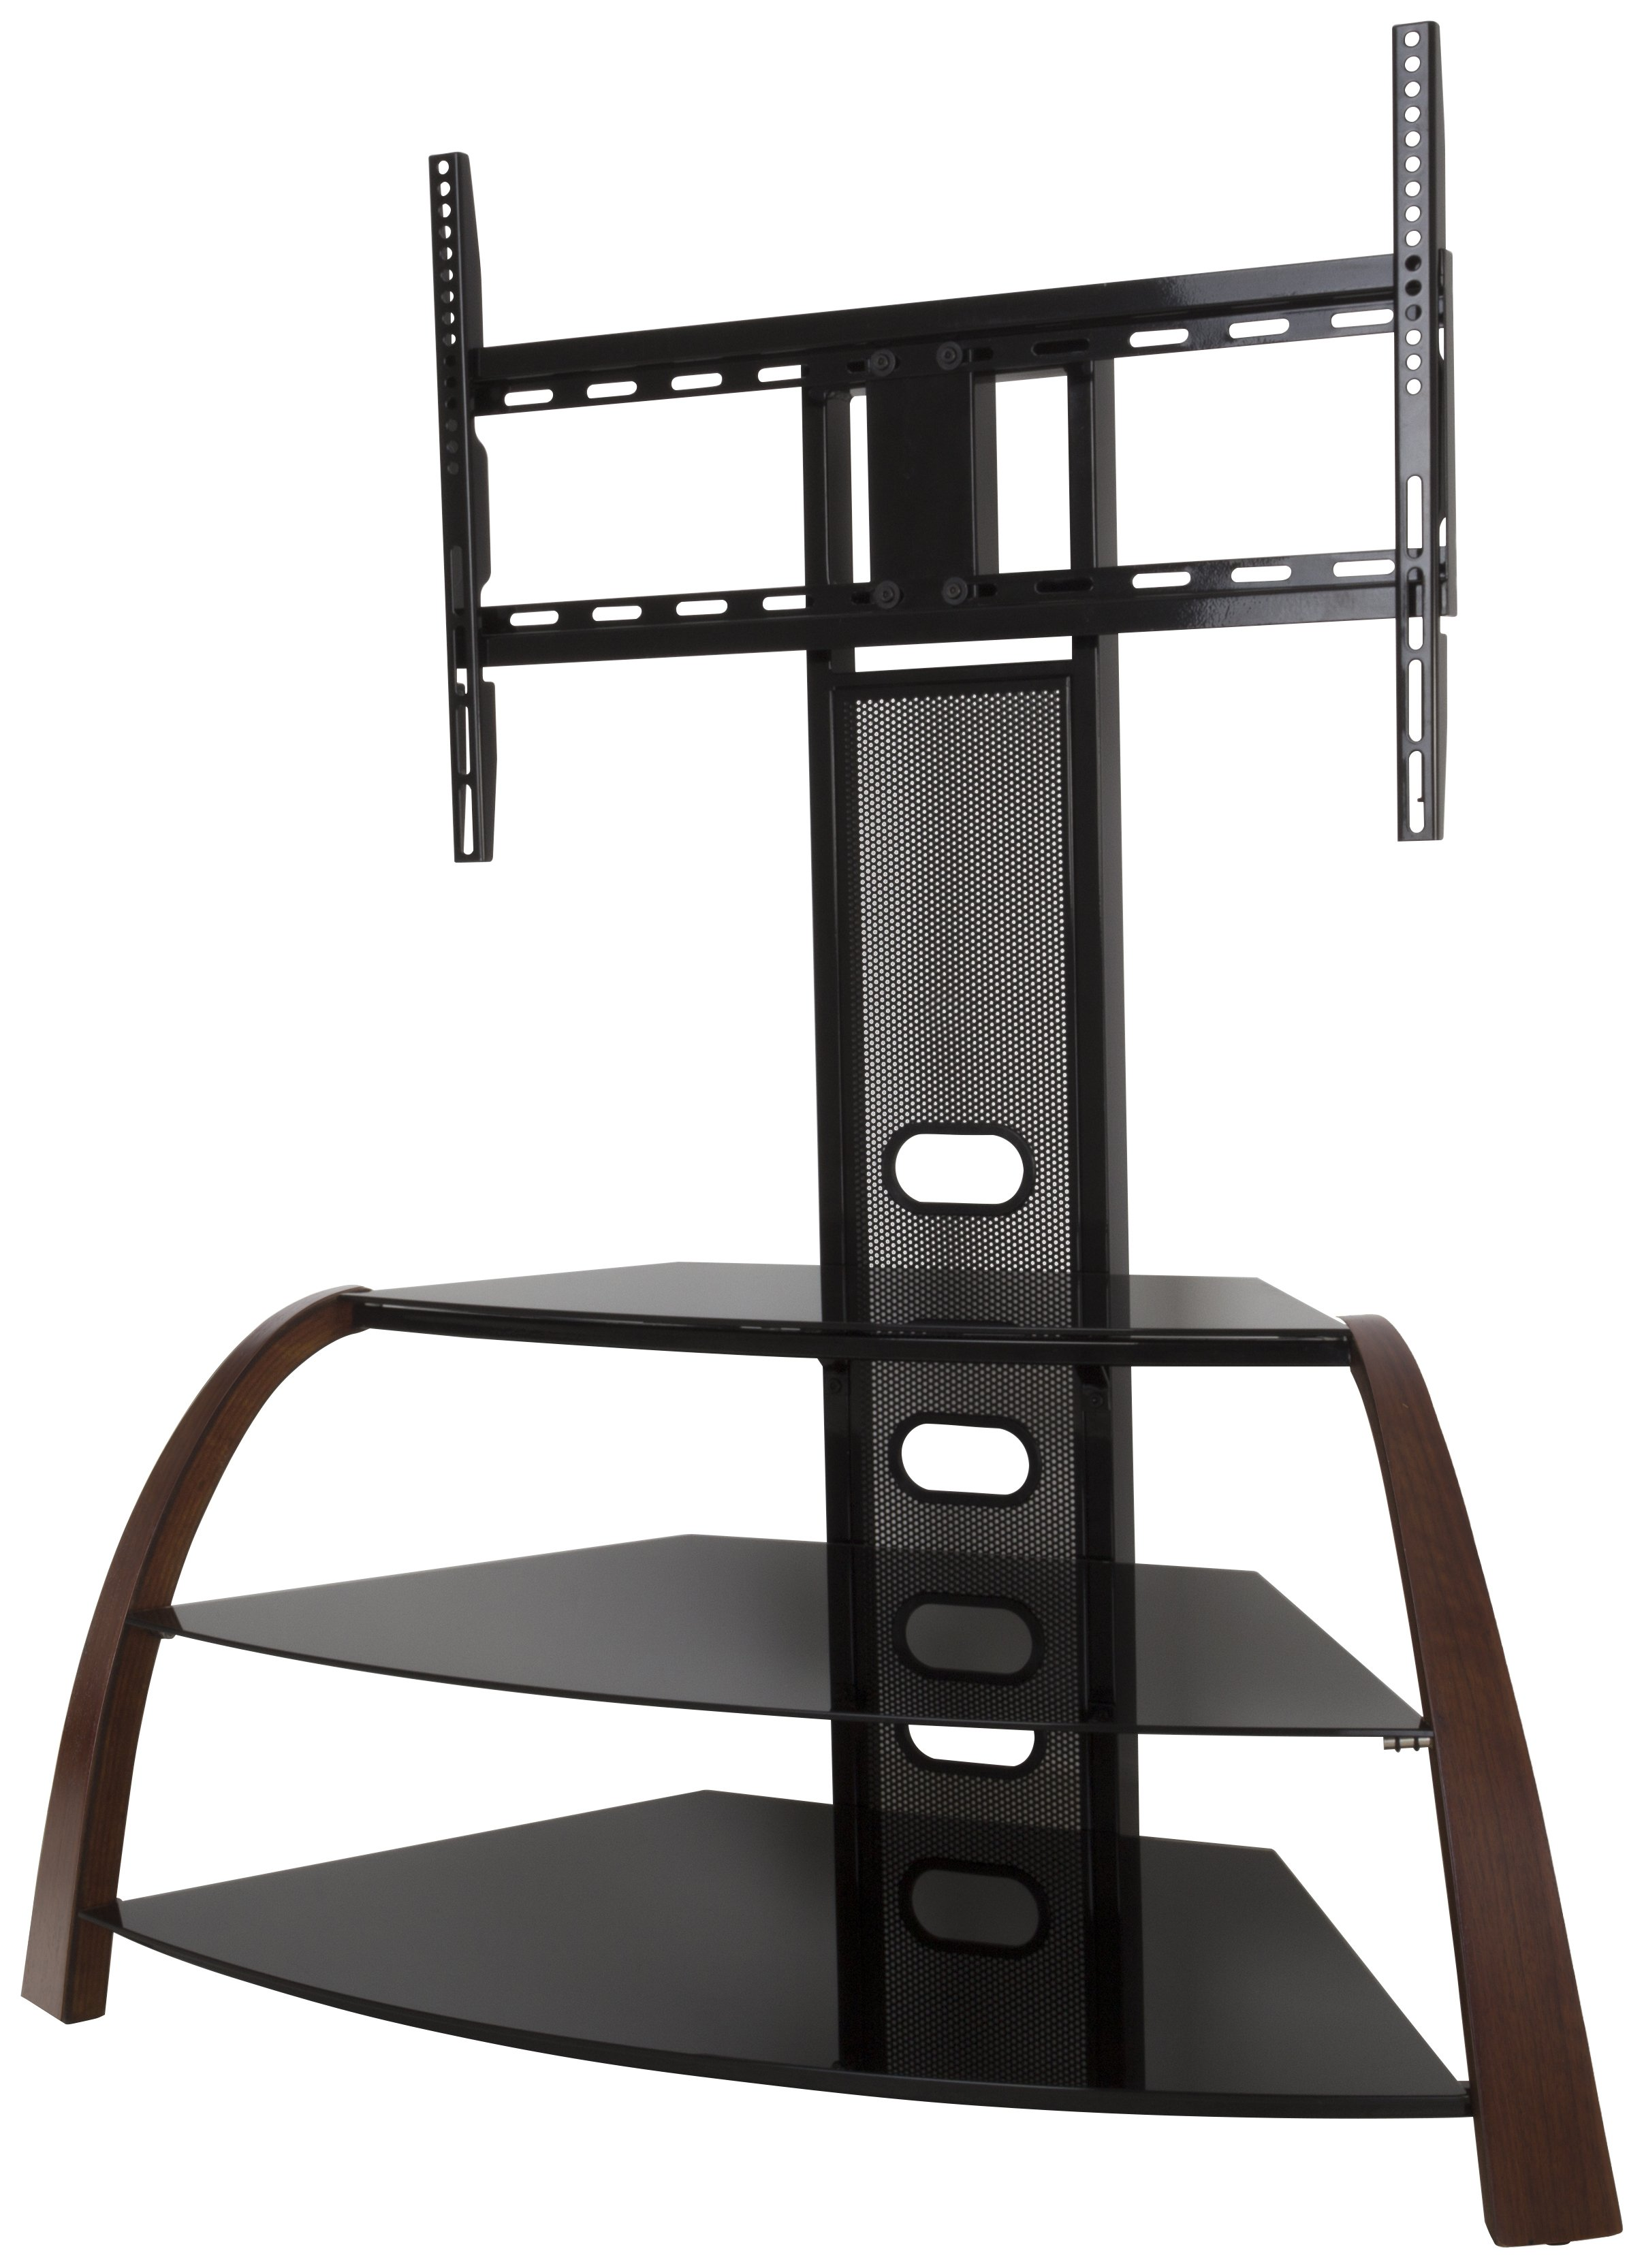 Image of AVF Kingswood Up to 55 Inch Combined TV Stand - Walnut